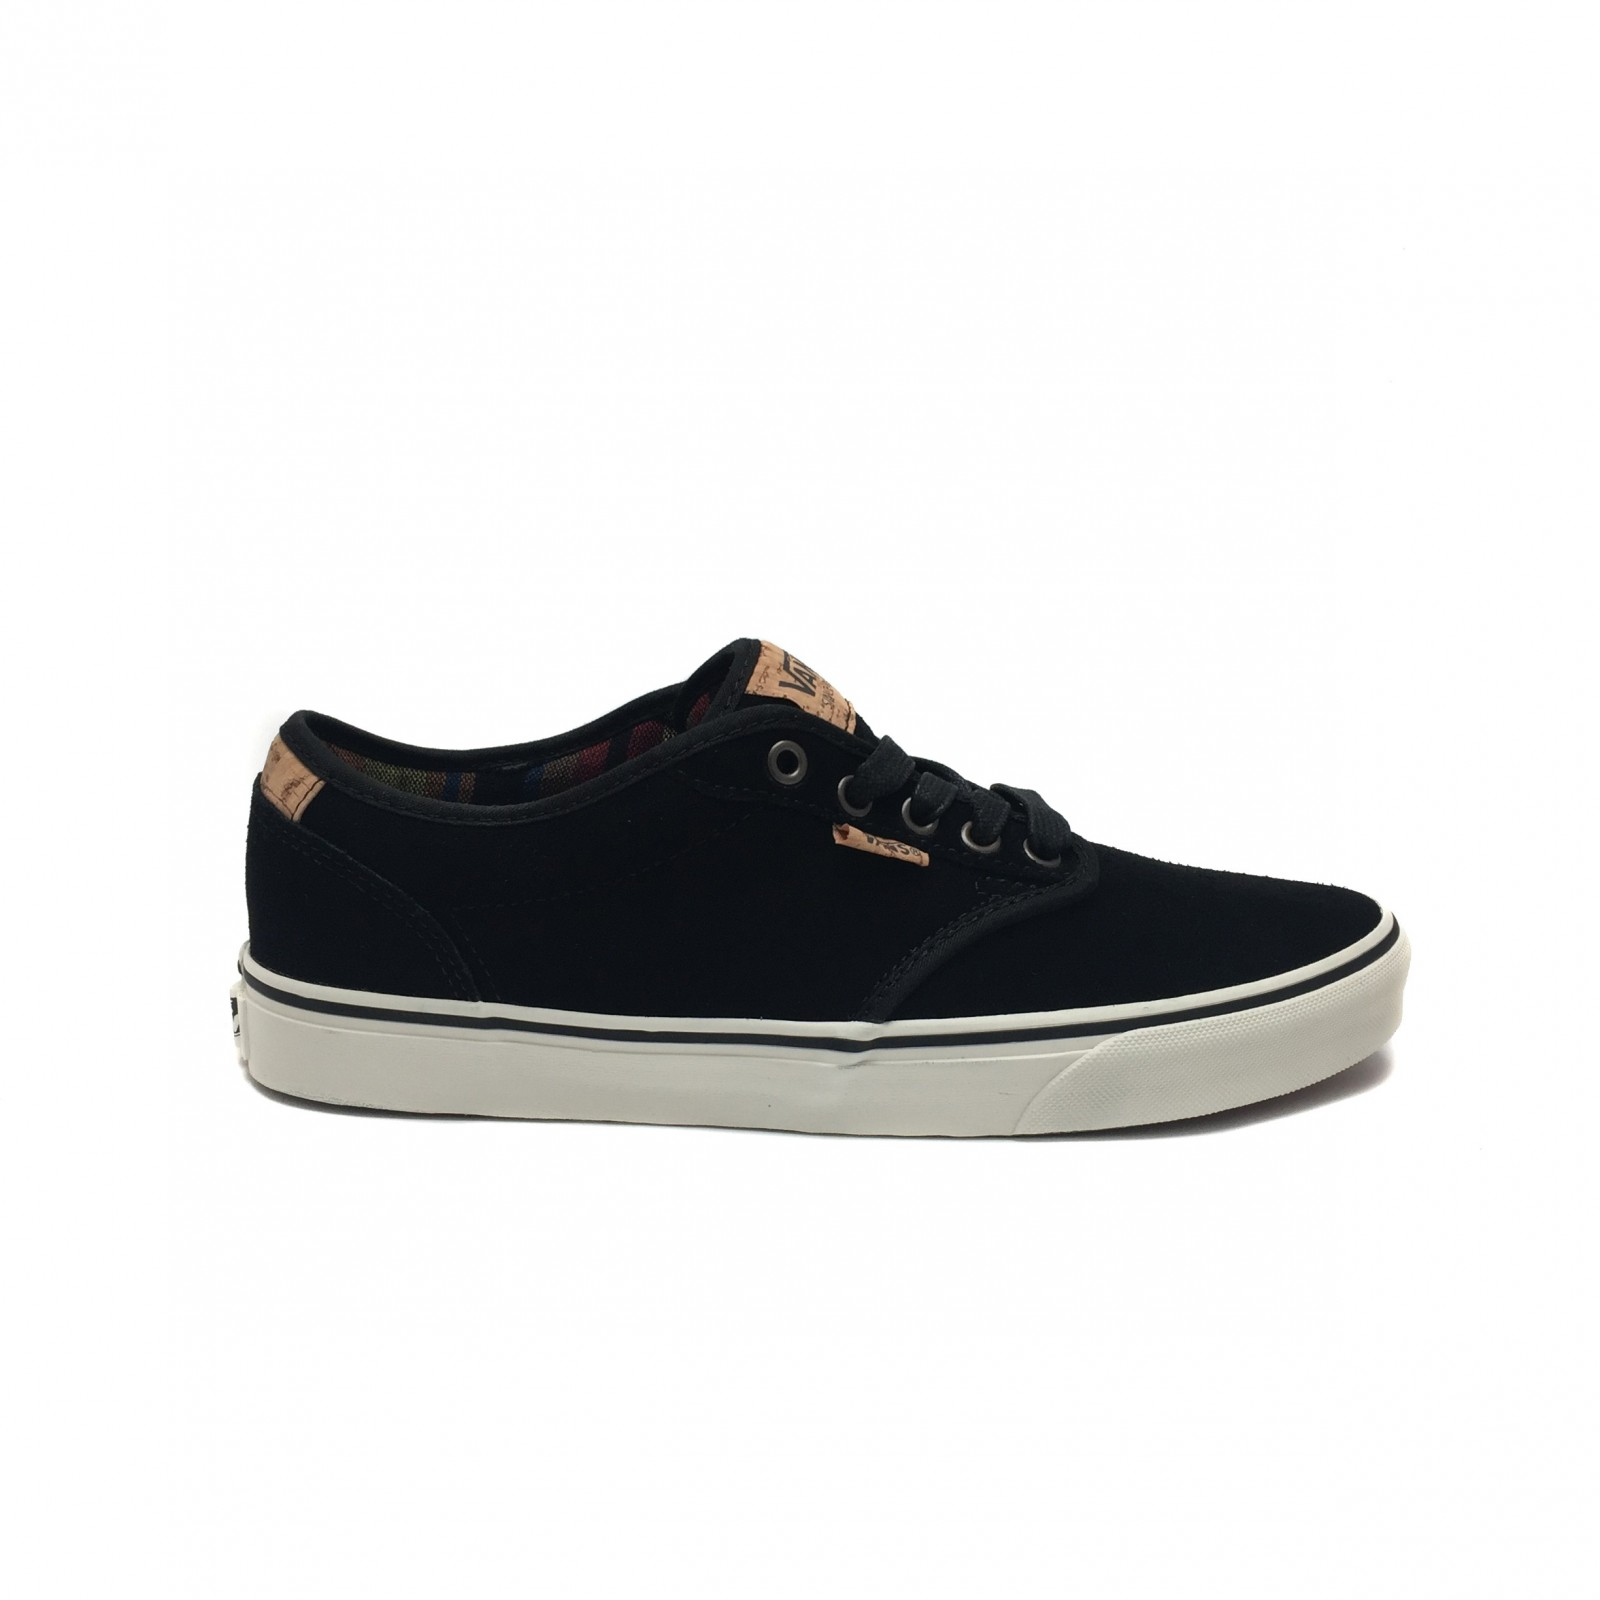 227c238b97640 Pánské boty Vans M Atwood Deluxe(Suede)Black